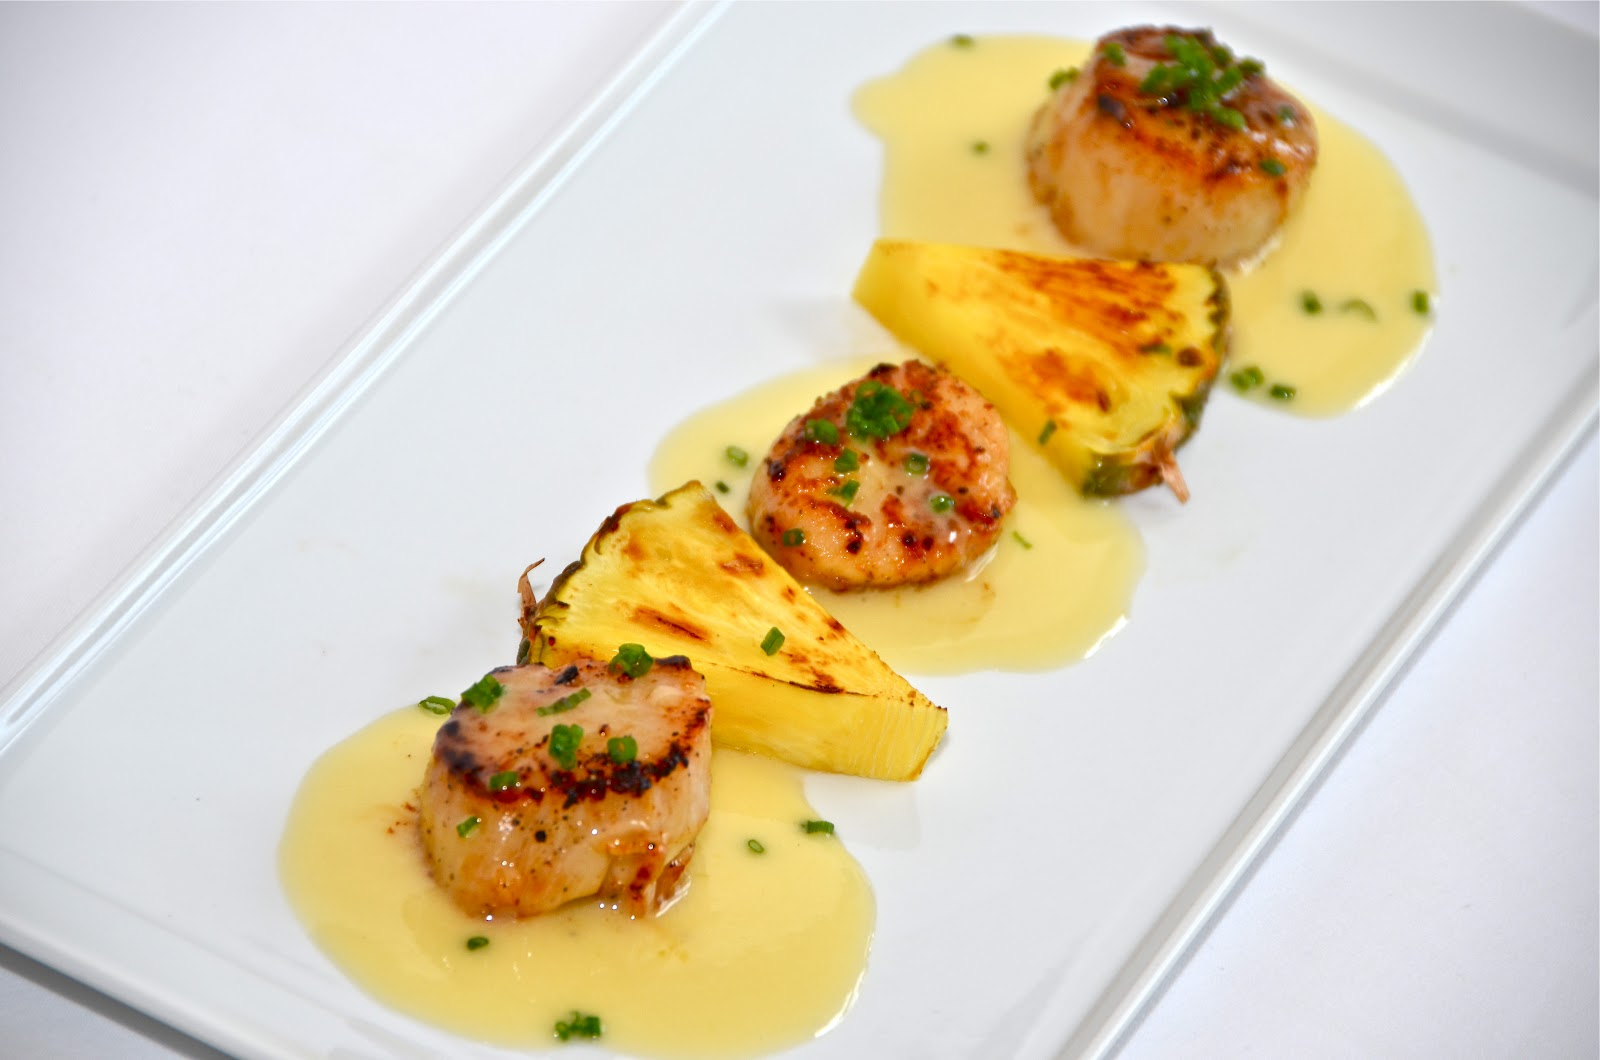 Beurre Blanc Sauce seared scallops with pineapple beurre blanc sauce - delights of